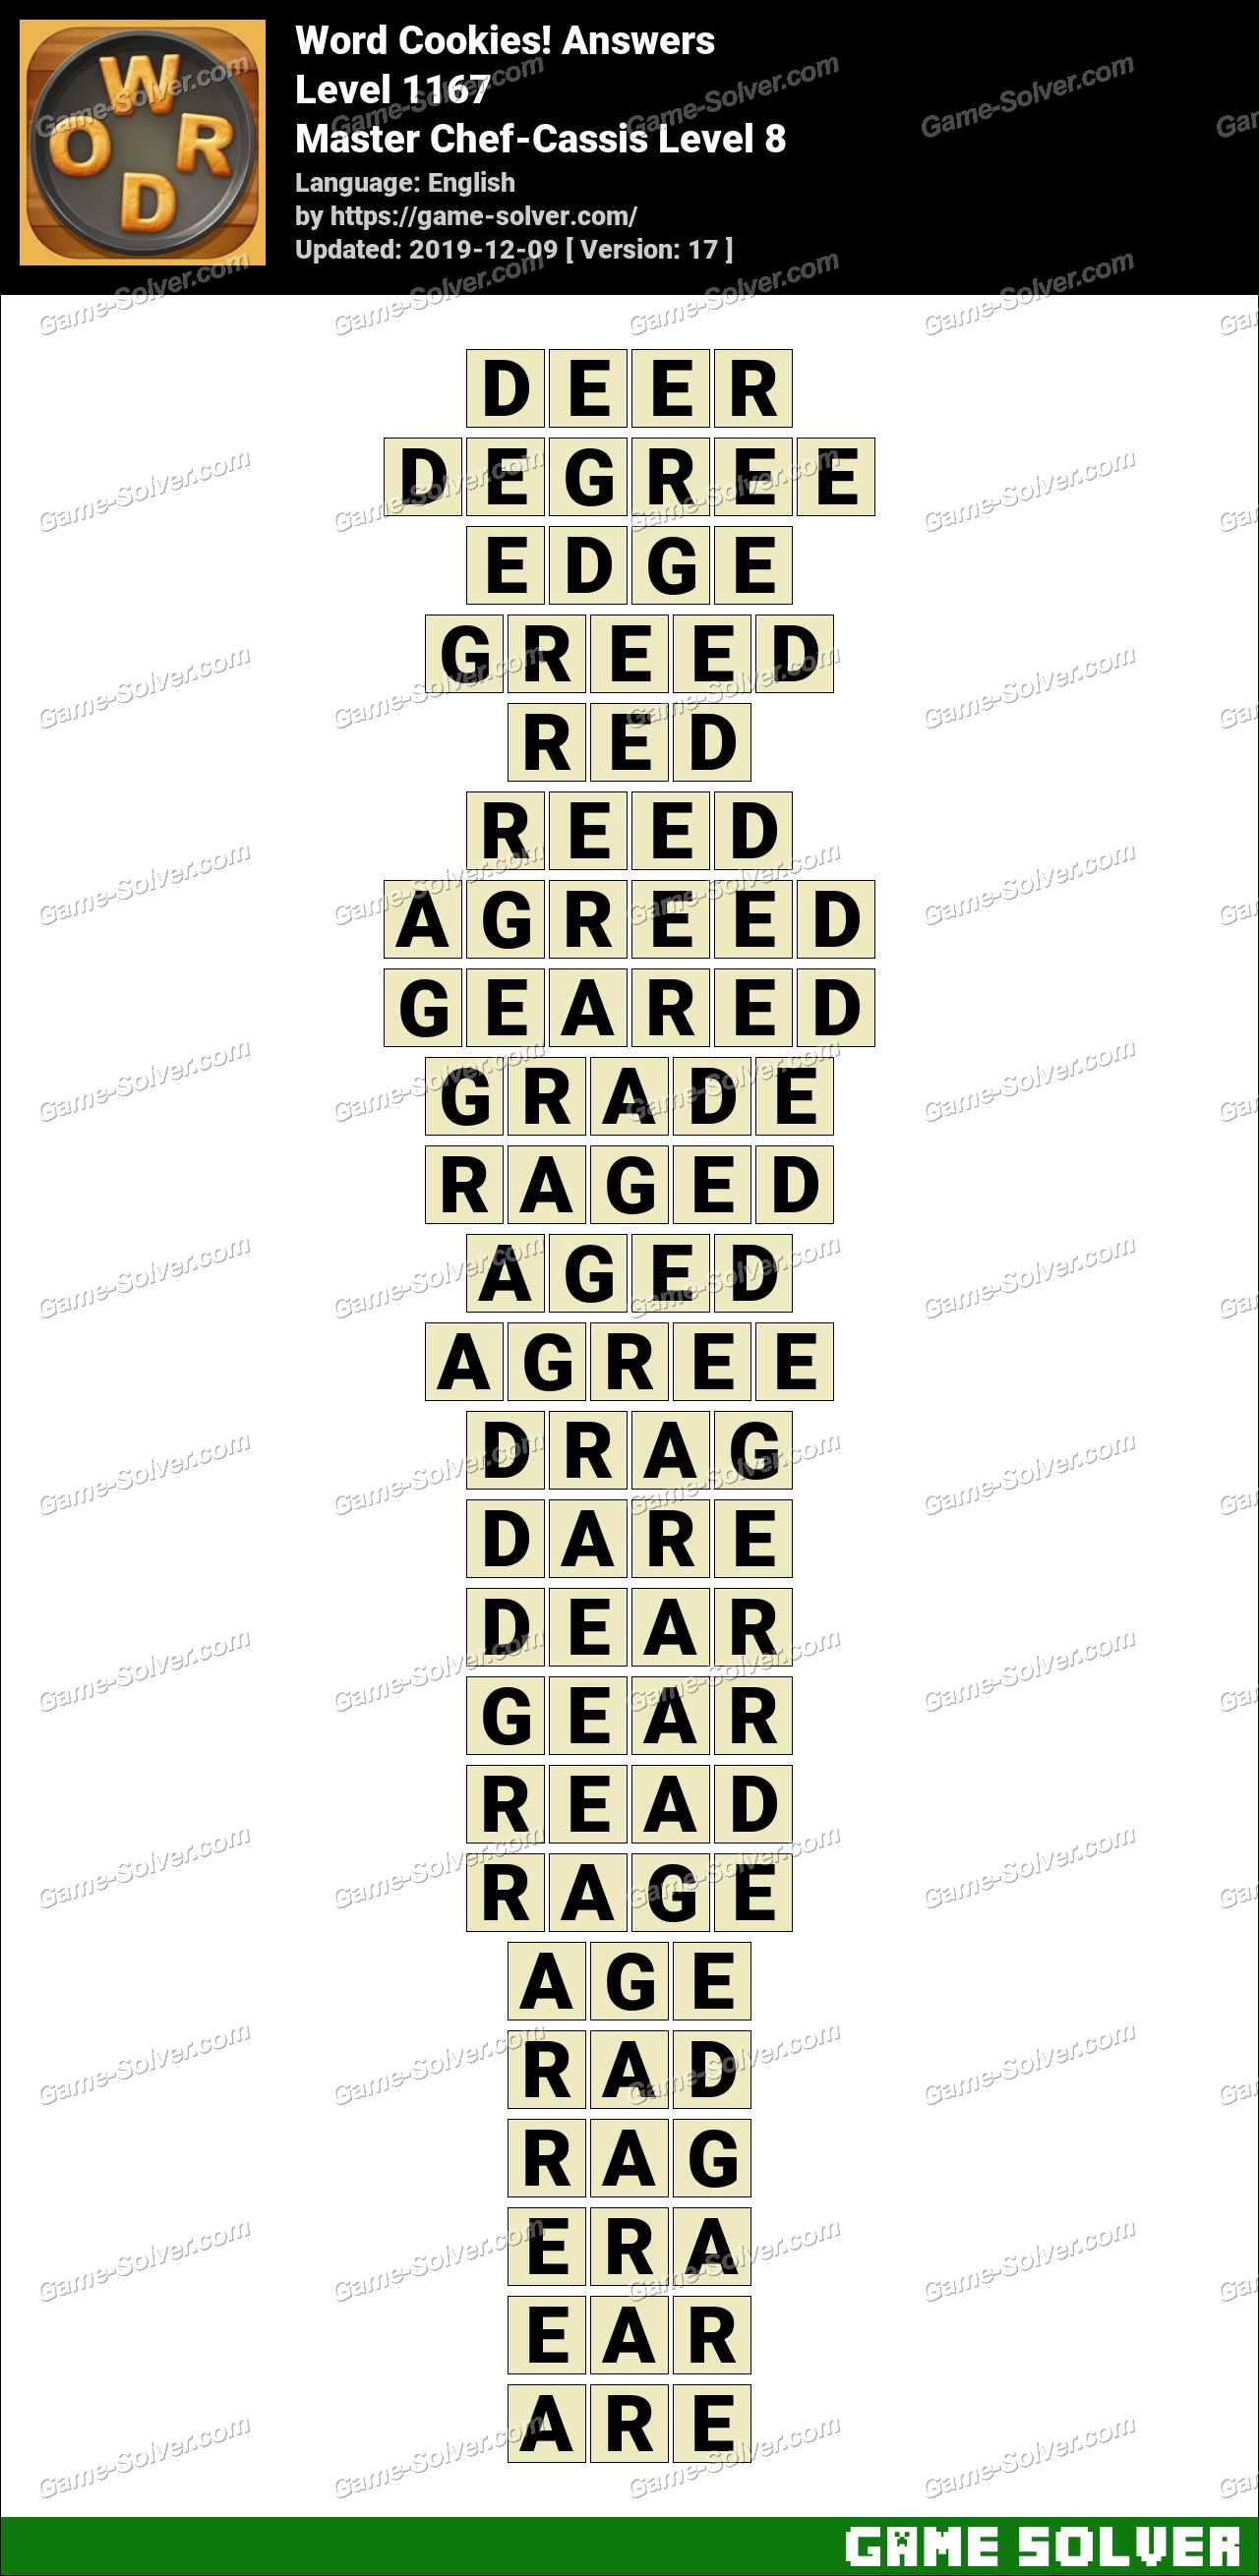 Word Cookies Master Chef-Cassis Level 8 Answers